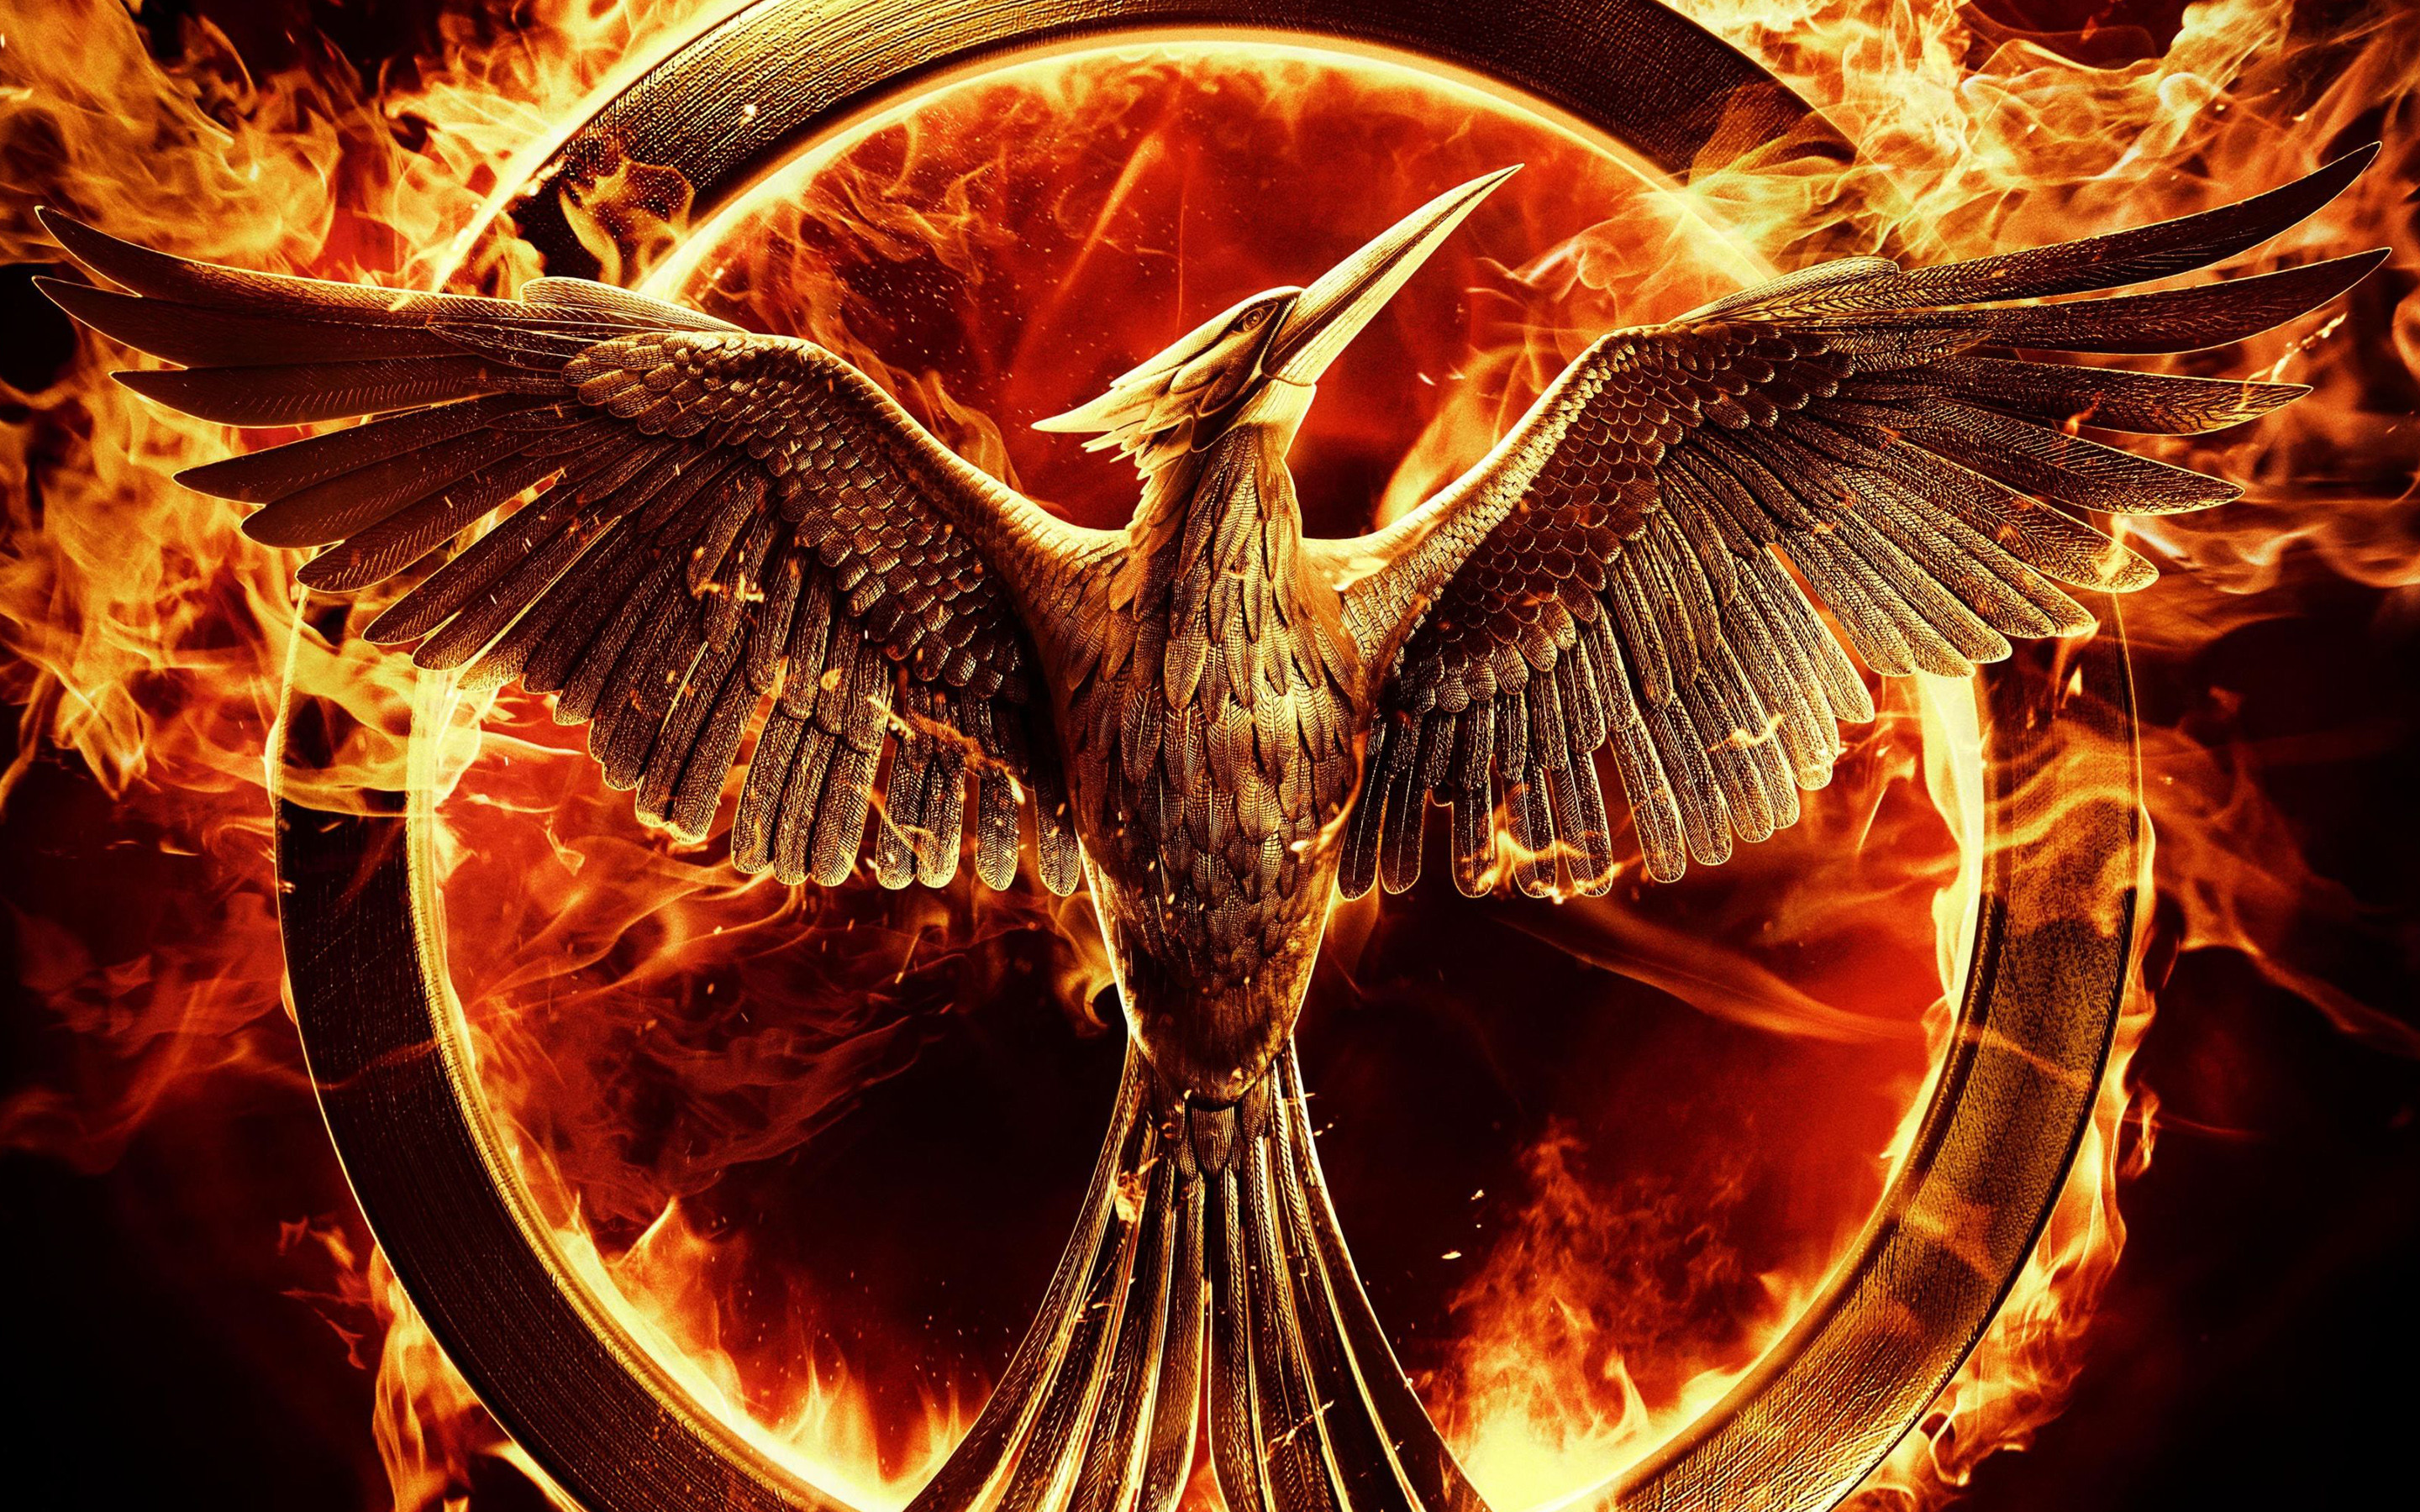 2880x1800 Movie - The Hunger Games: Mockingjay - Part 1 The Hunger Games Mockingjay  Fire Wallpaper